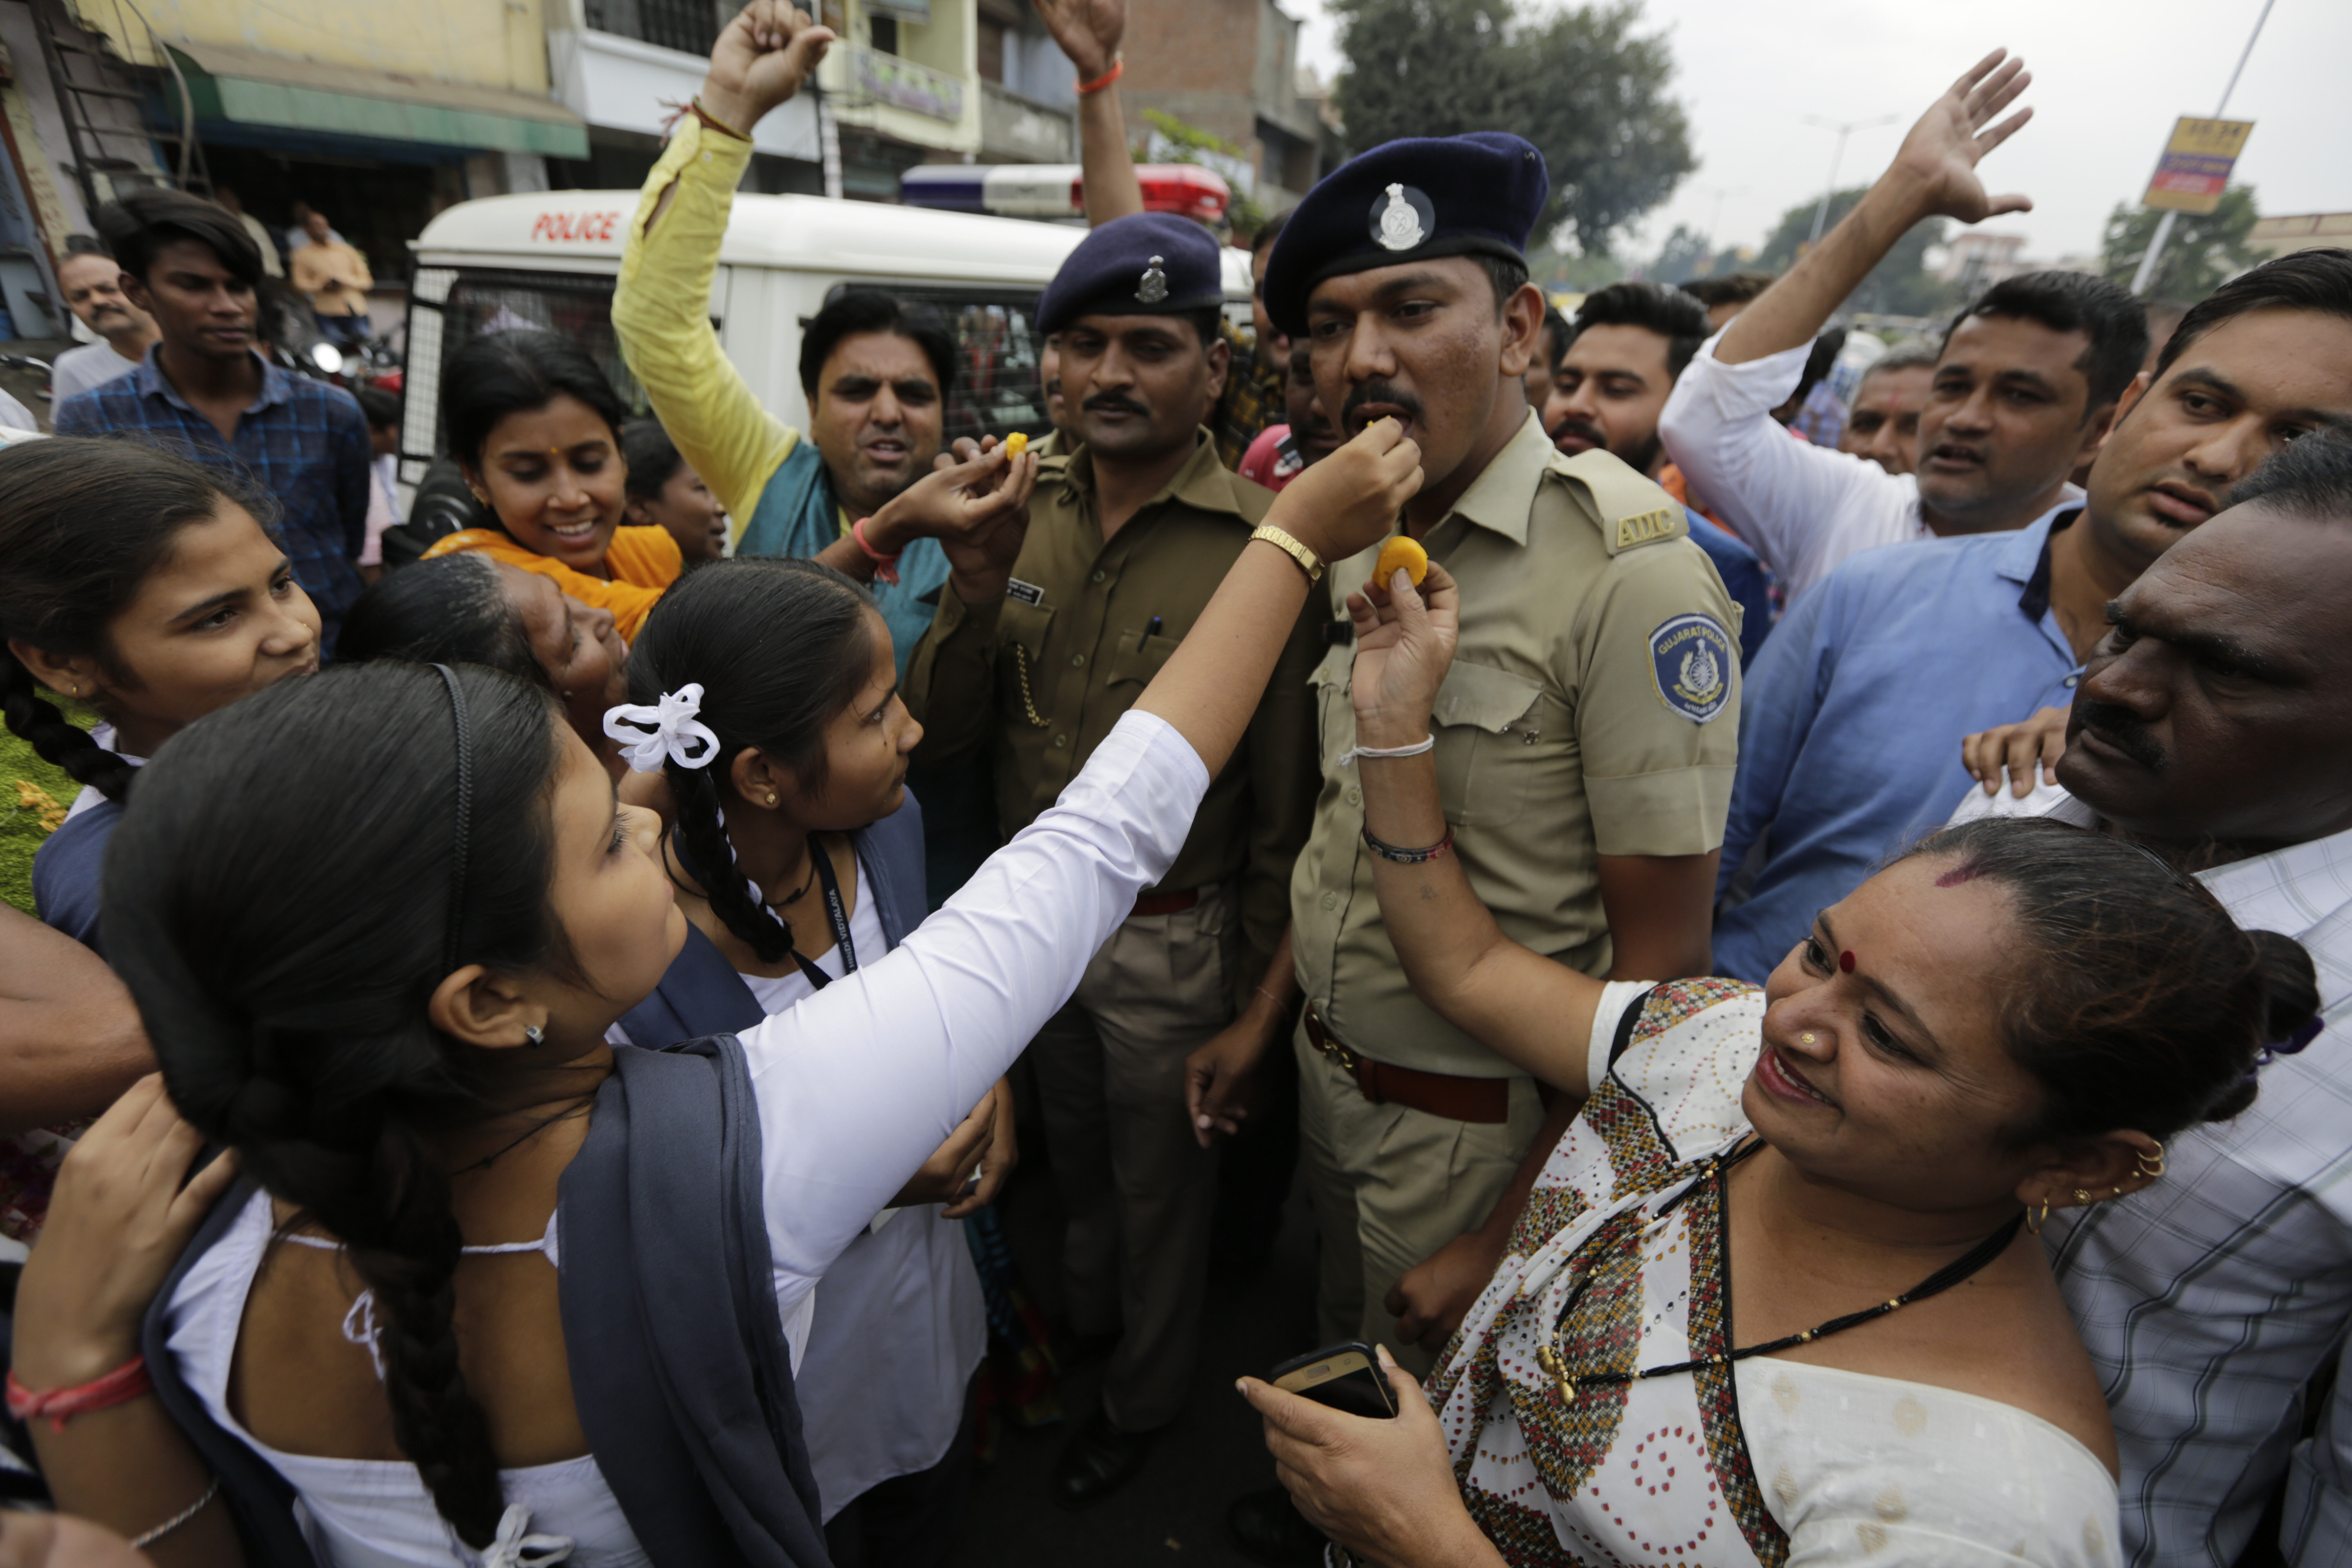 Indian feed sweets to policemen on duty and shout slogans in favor of police to celebrate killing of four men suspected of raping and killing a woman in Shadnagar in southern state of Telangana, in Ahmadabad, India, Friday, Dec. 6, 2019. Police on Friday fatally shot four men suspected of raping and killing a woman in southern India, drawing both praise and condemnations in a case that has sparked protests across the country.